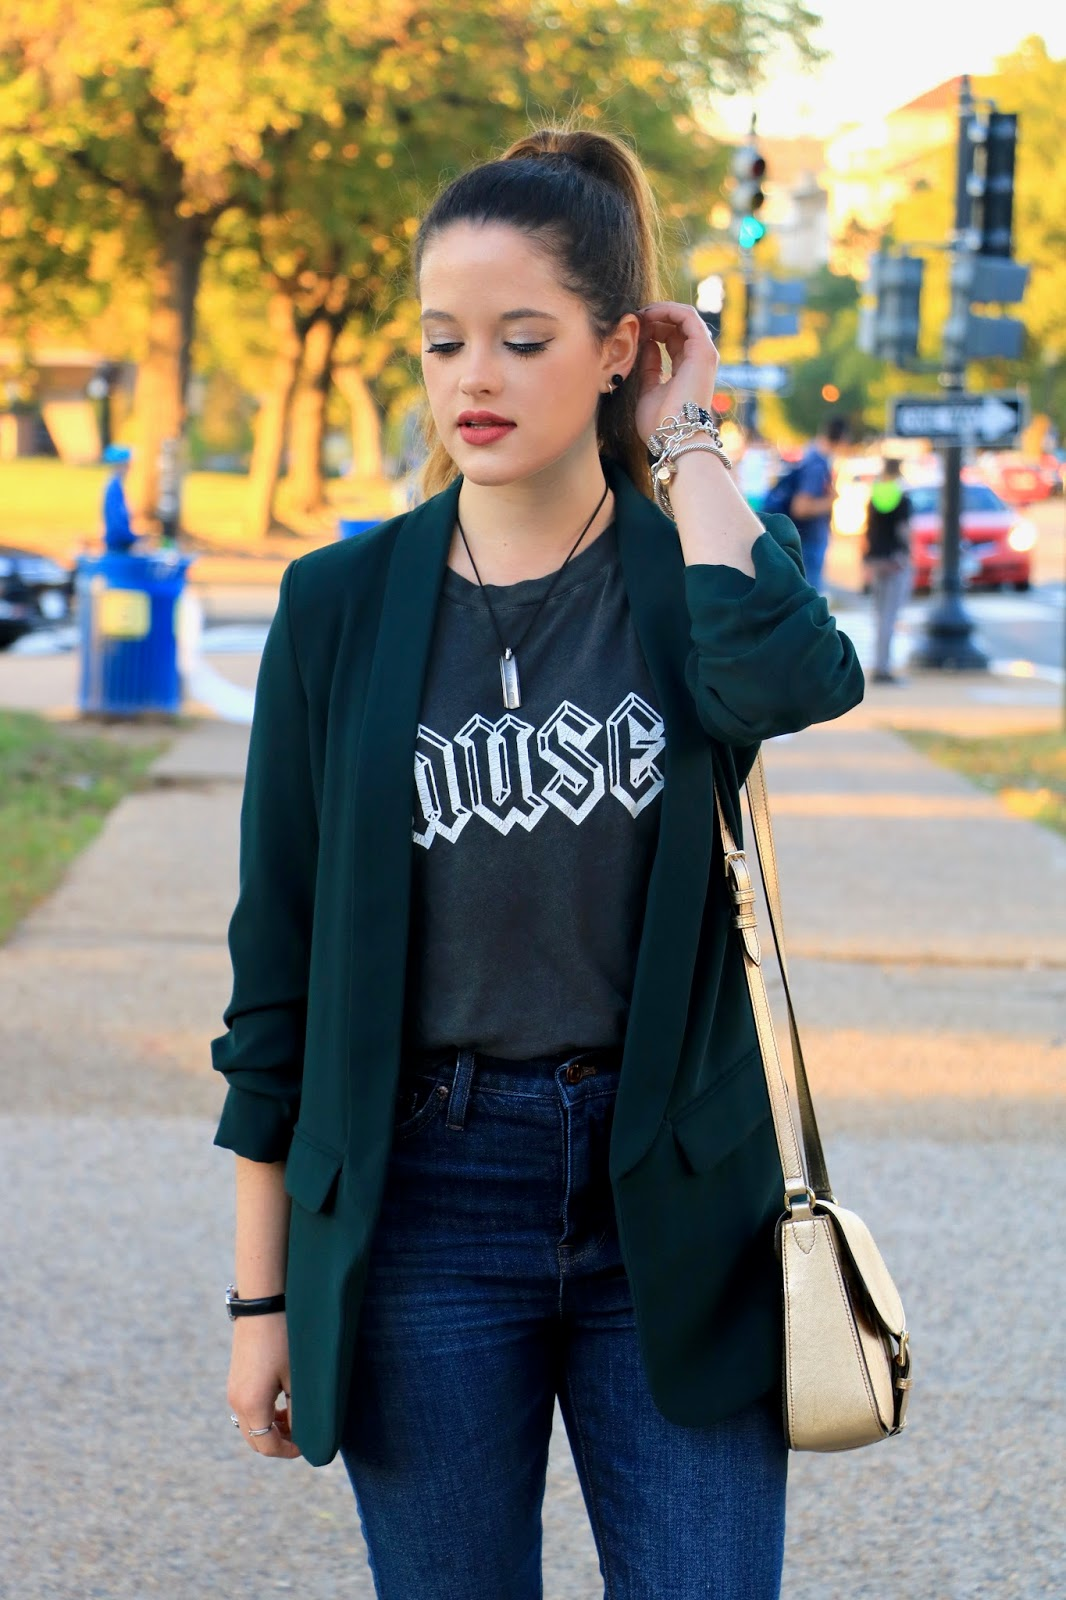 Nyc fashion blogger Kathleen Harper showing how to wear a graphic tee